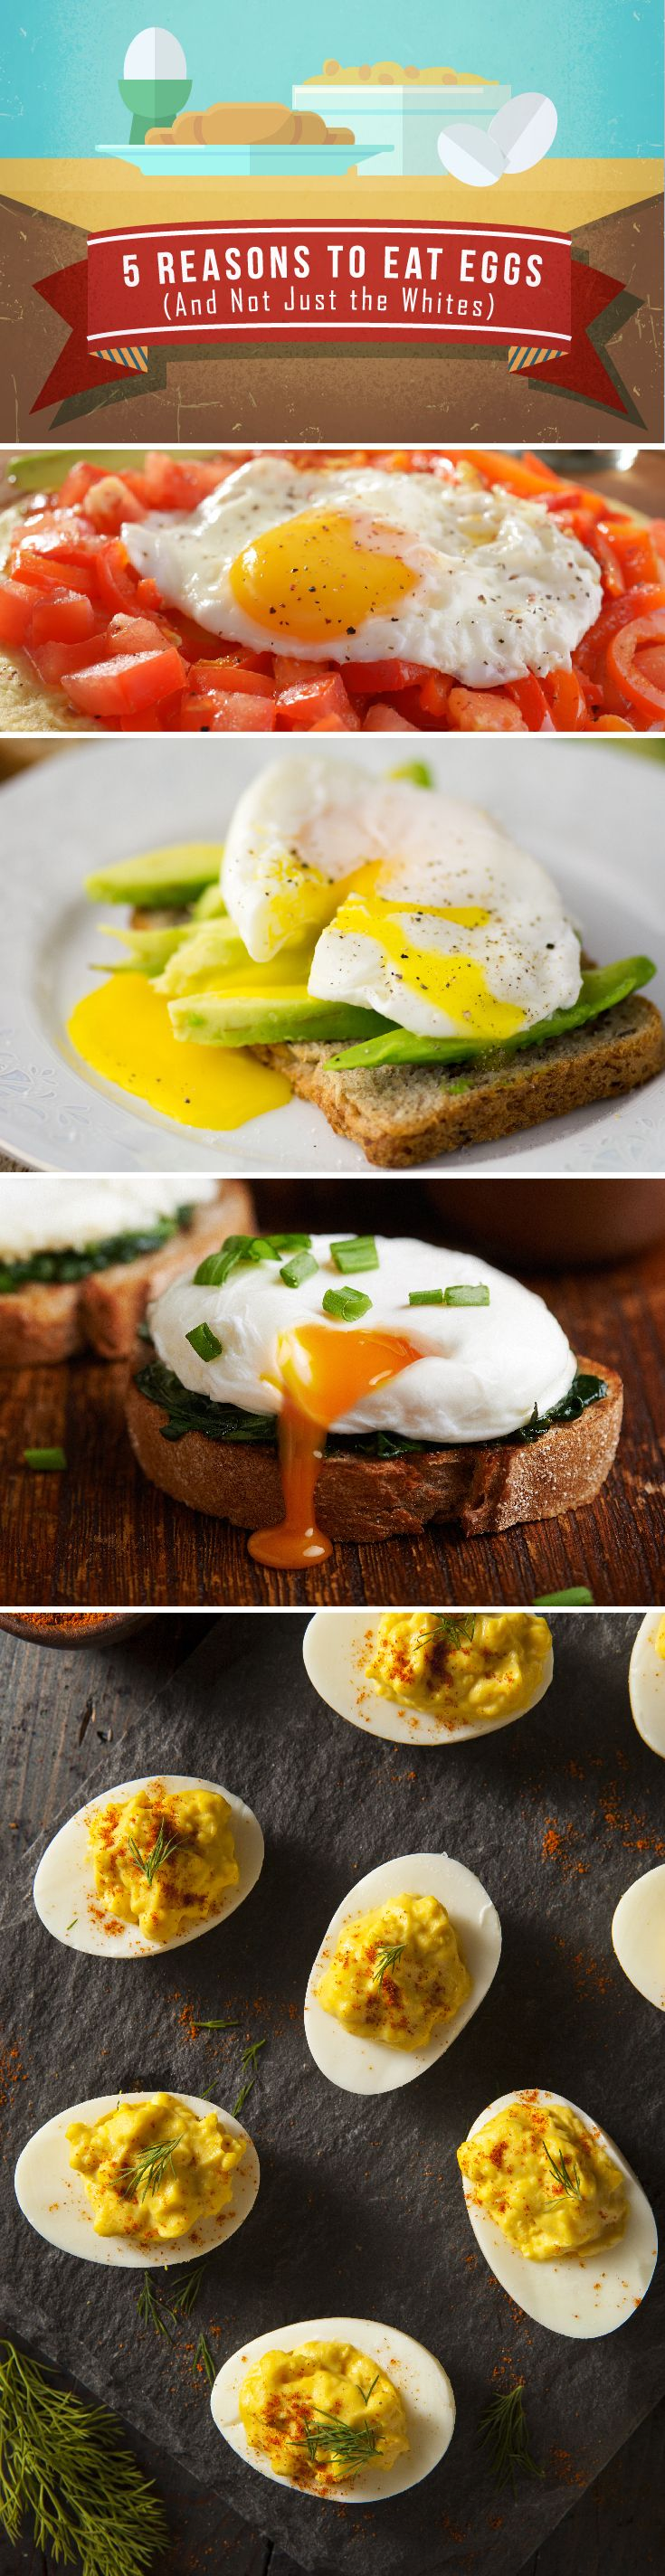 If you stuff down bland egg whites, youve been making yourself miserable for no reason. Eat the entire egg, yolk and all, reaping a TON of health benefits. #weightloss #fitness #health #eggs #recipe #exercise #GYFT More Bland Eggs, Health Eggs, Eggs White, Eggs Recipe, Recipe Exercise, Fit Health, Eggs Yolks, Exercise Gyft, Entir Eggs